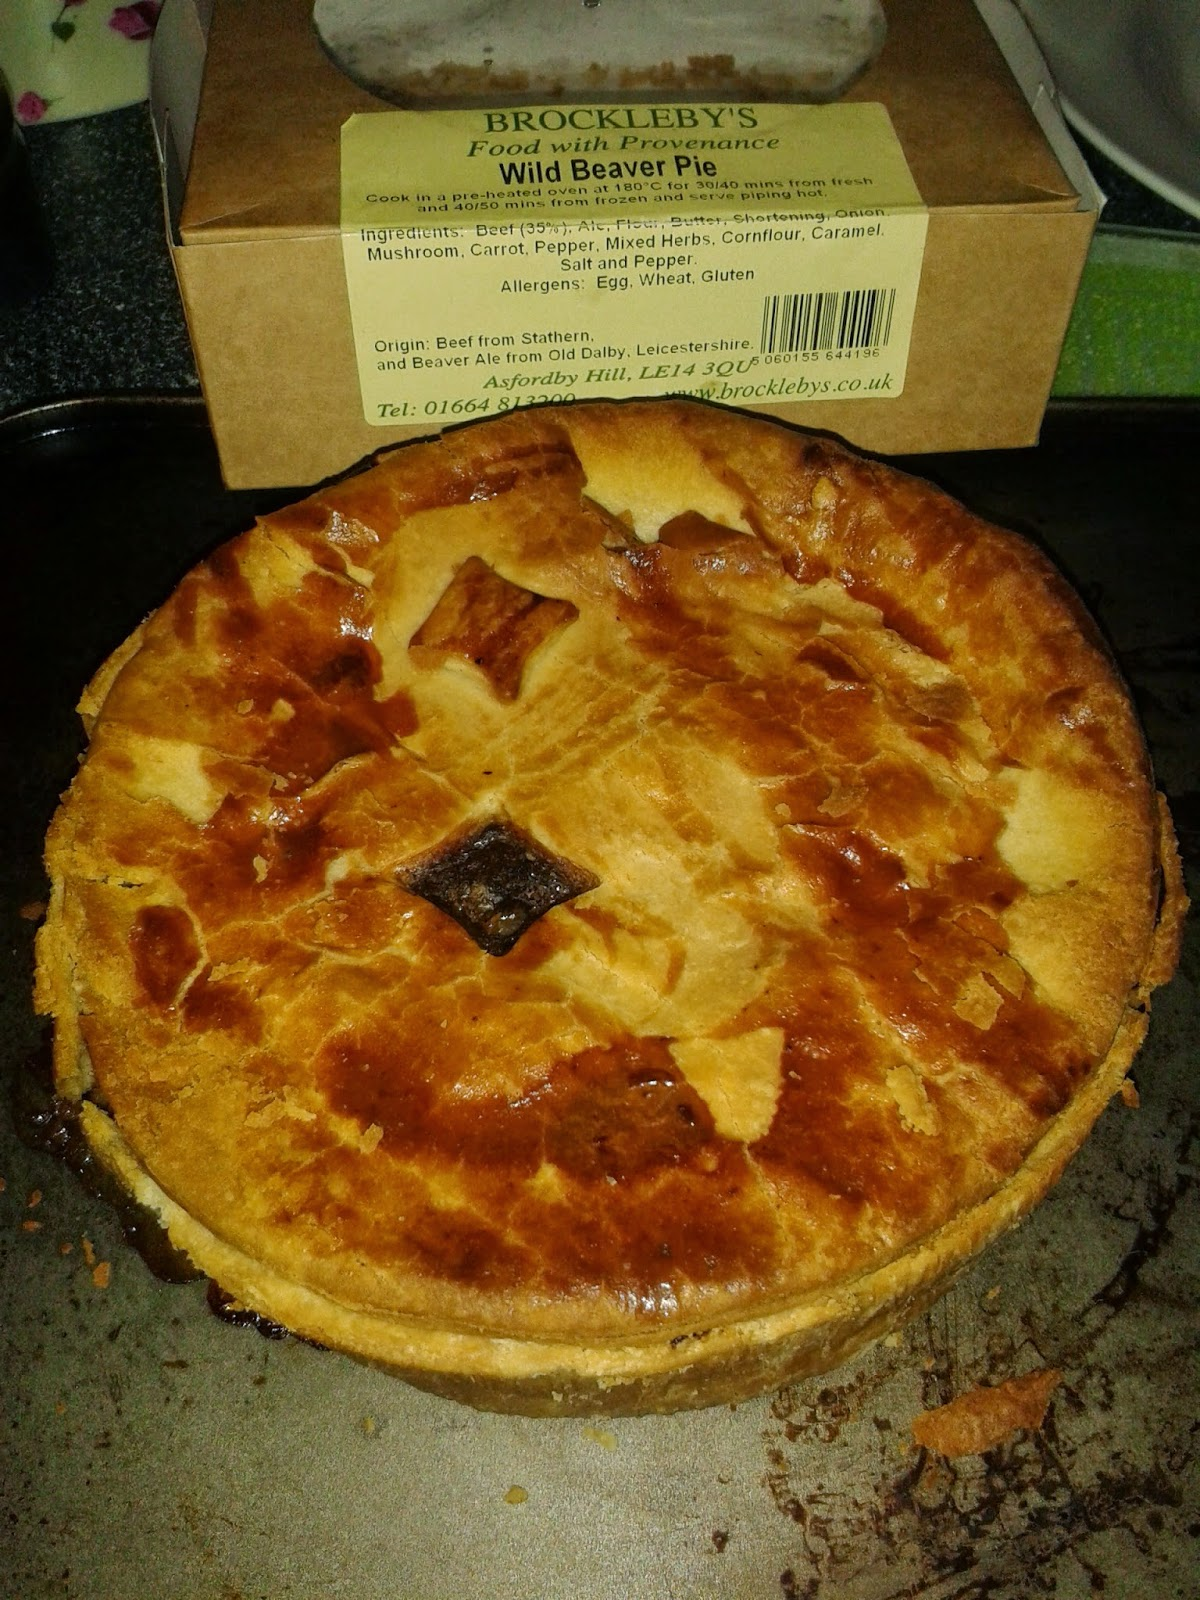 """Brockleby's """"Wild Beaver"""" Steak and Beaver Ale Pie Review"""